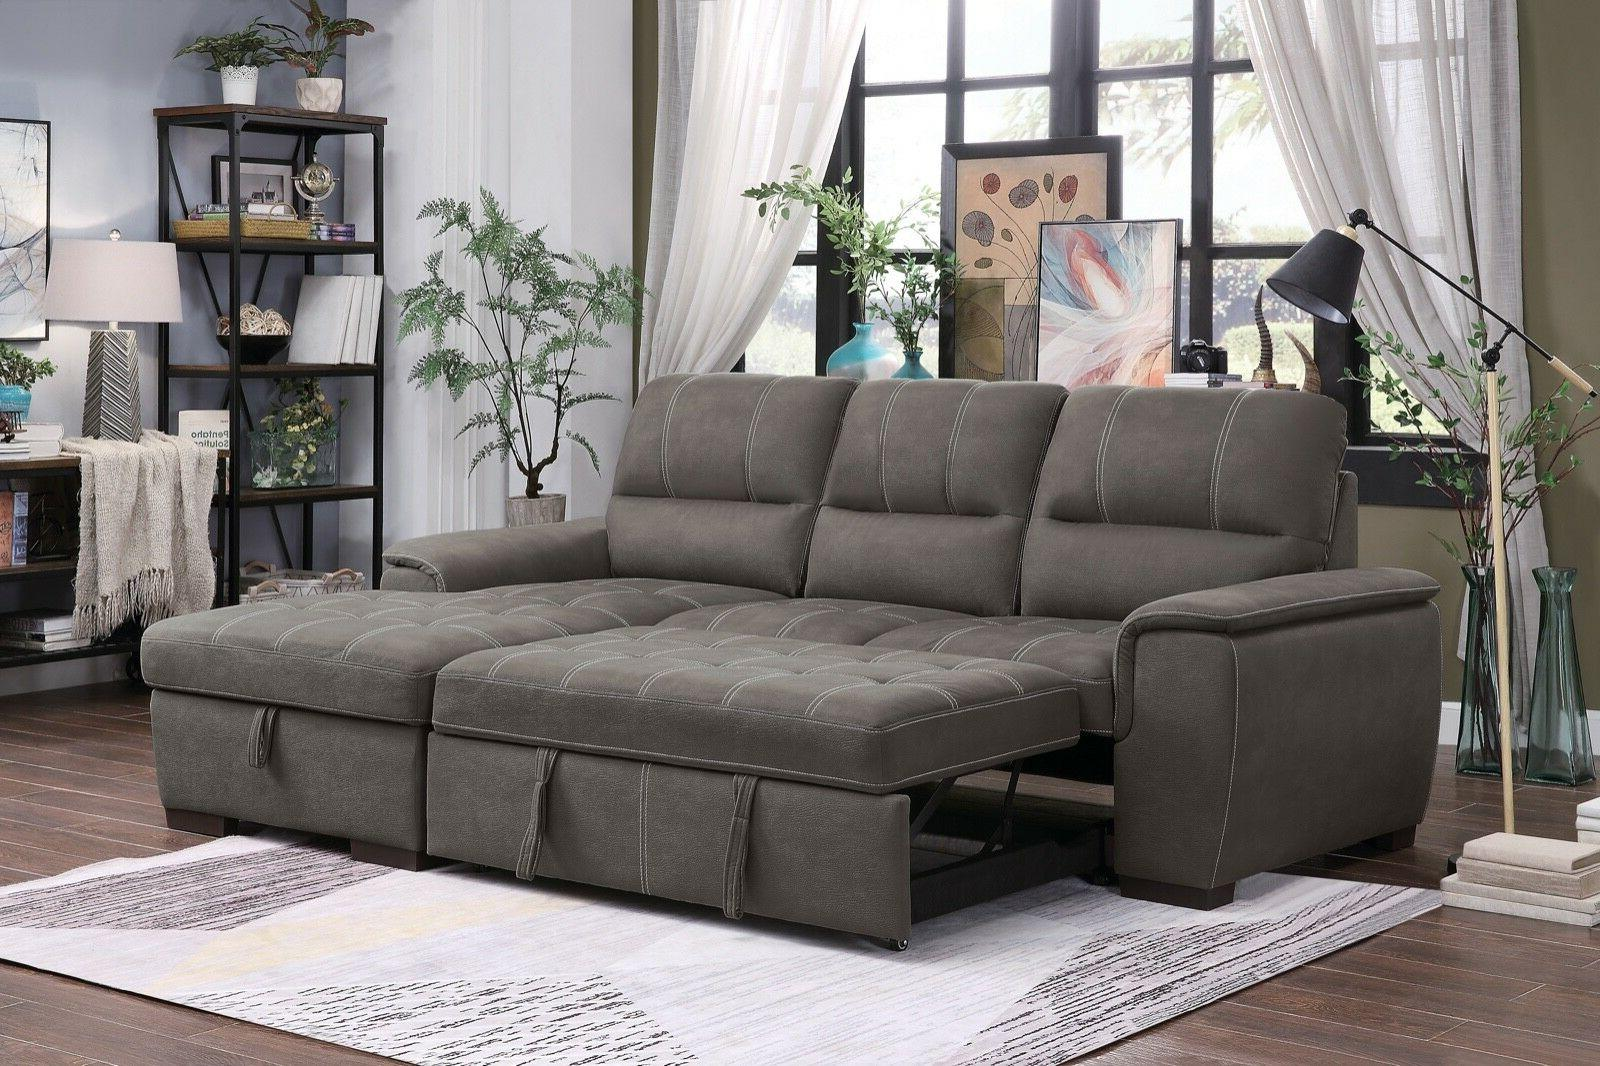 brown polyester queen sleeper storage sofa sectional